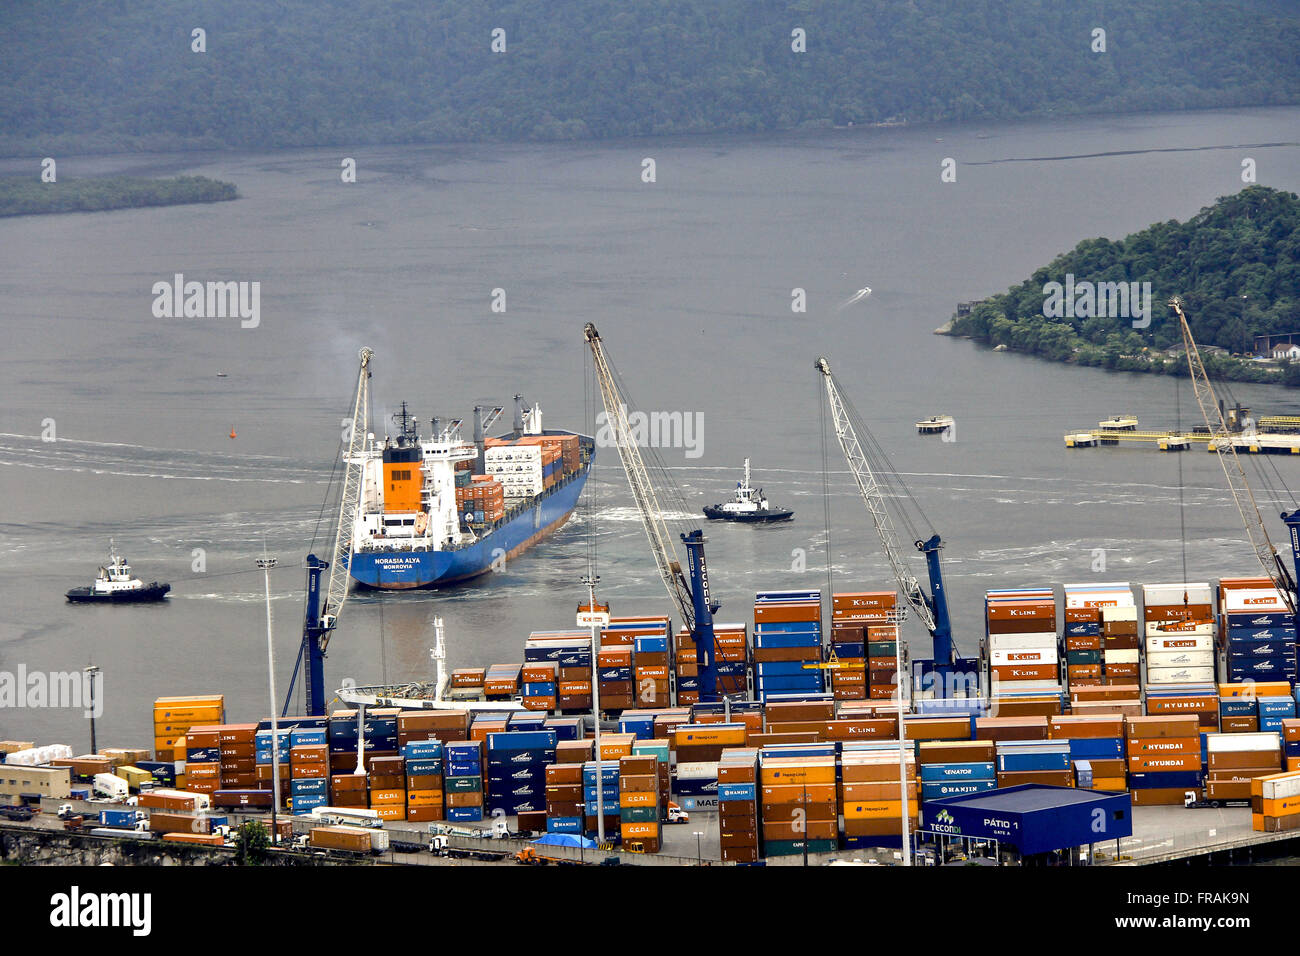 Port of Santos - tugs guiding movement of containers on ship terminal - Stock Image